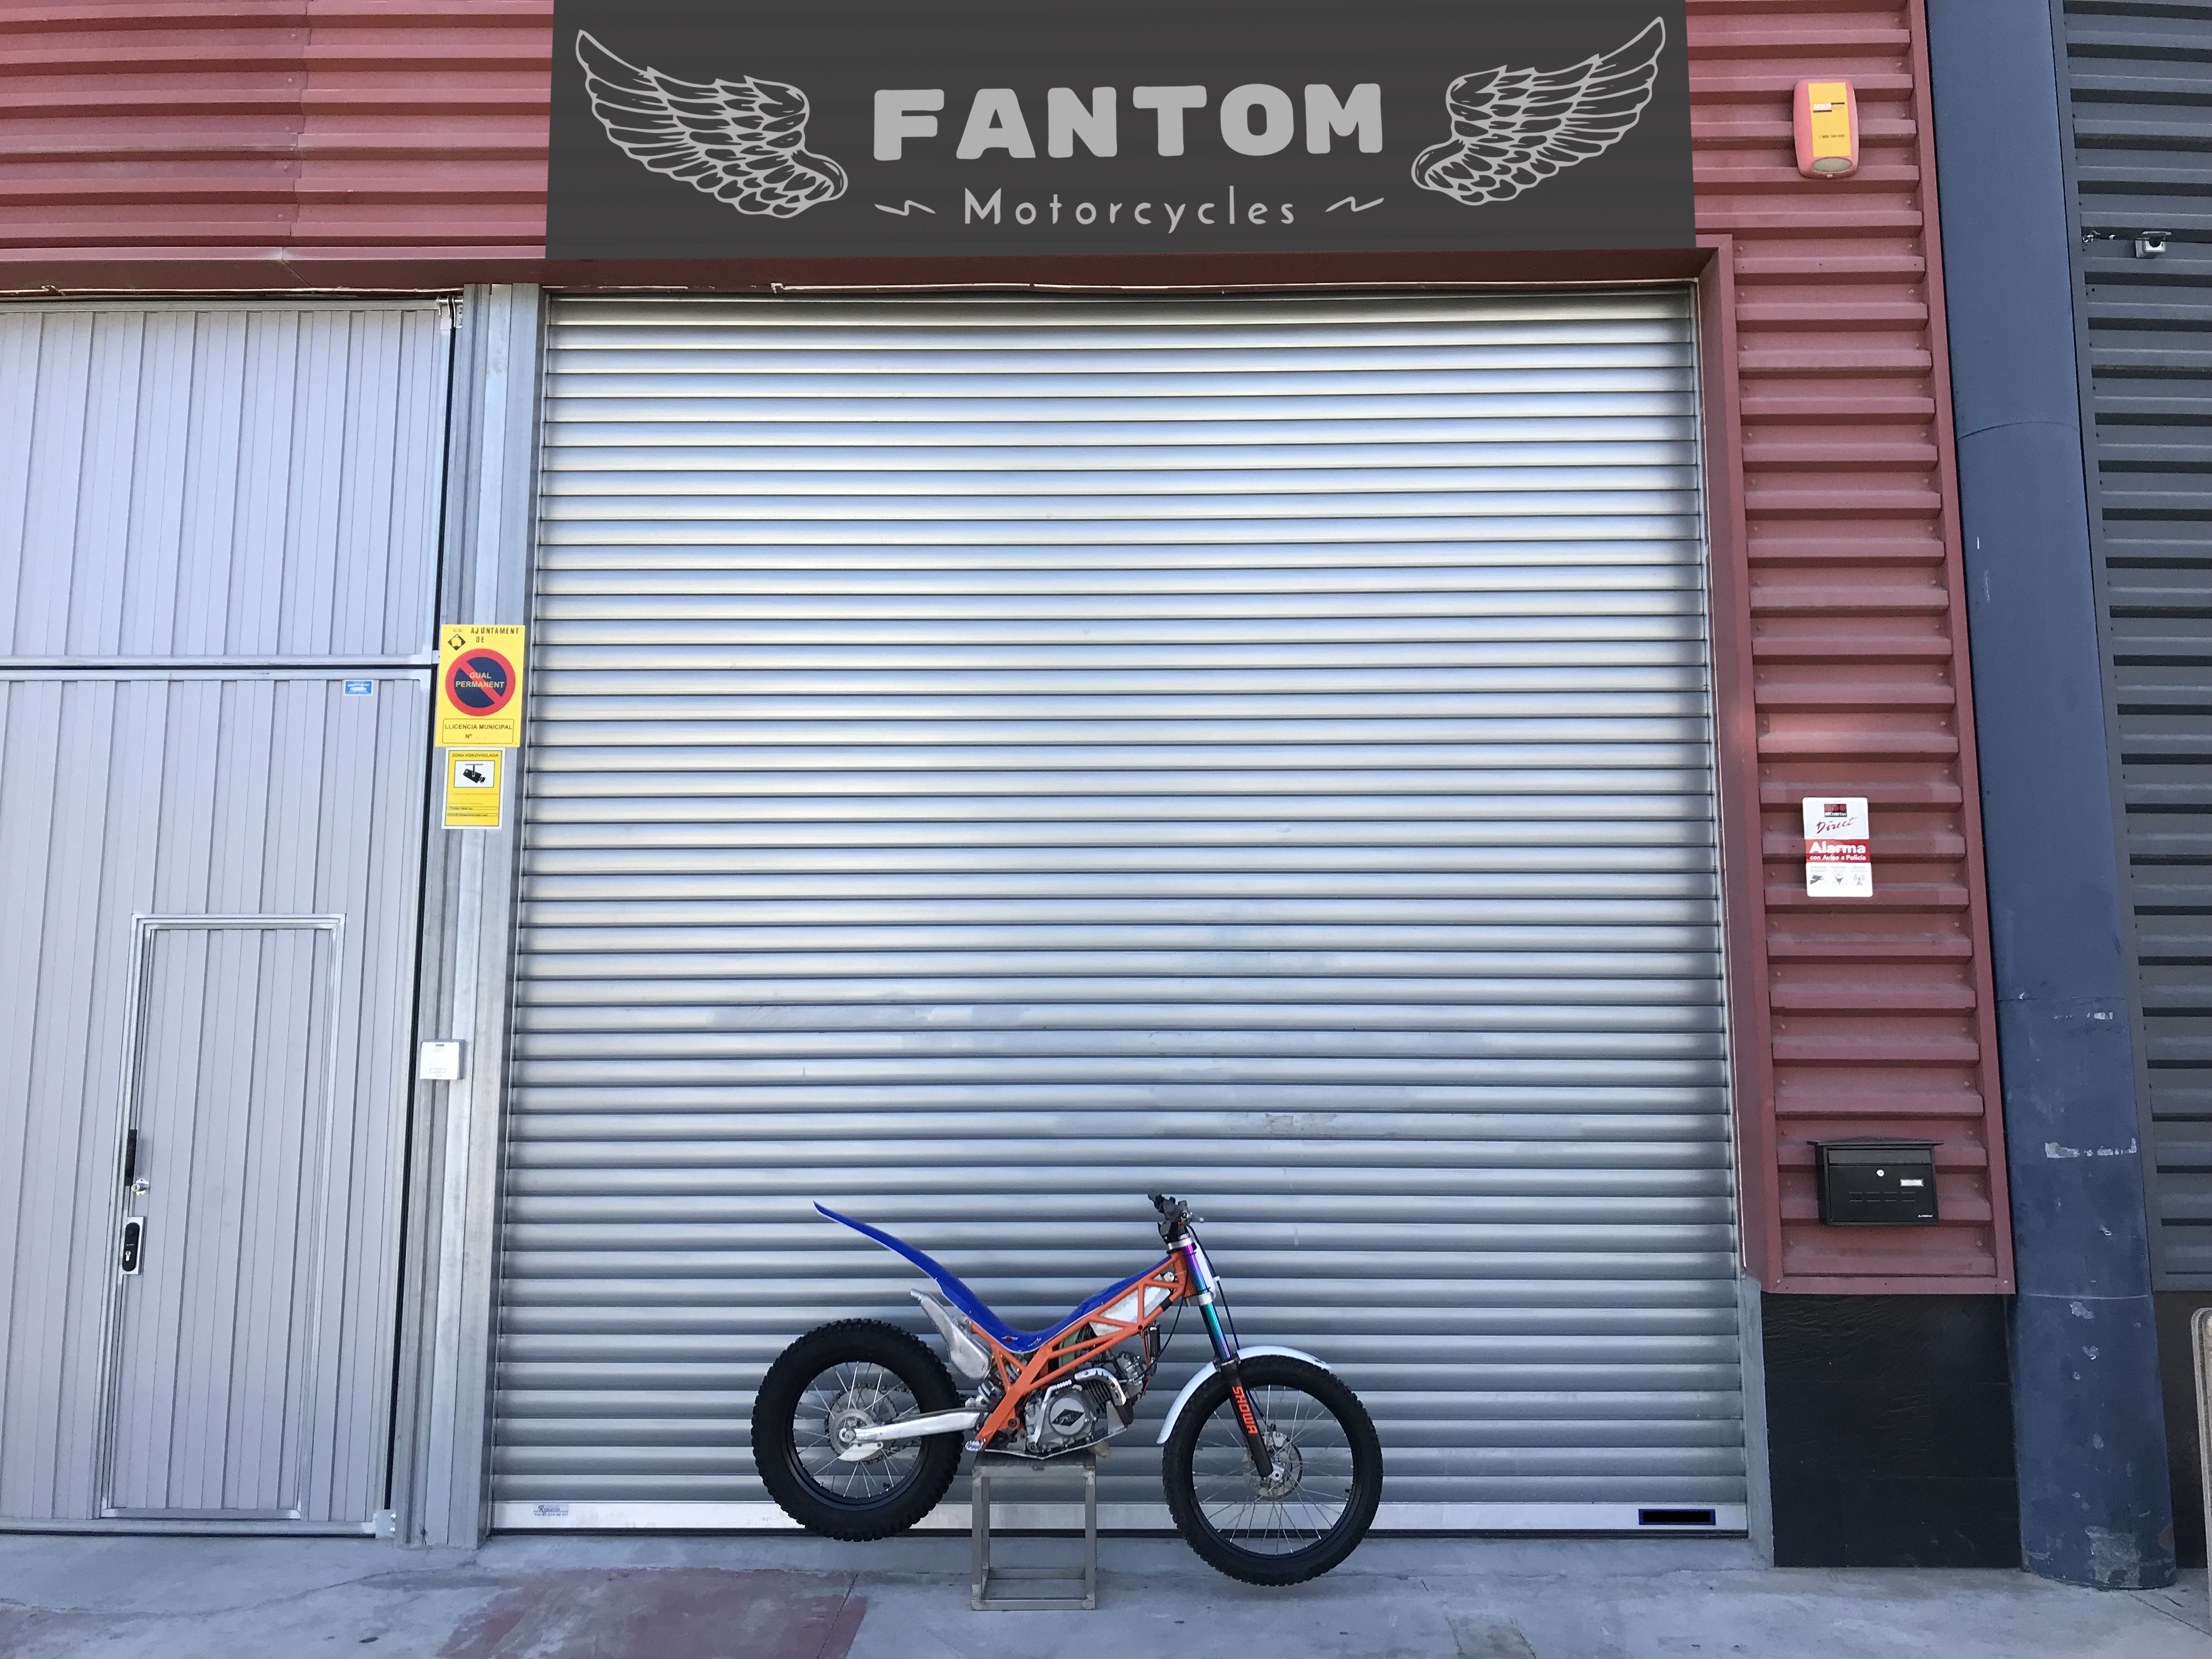 Fantom Motorcycles factory